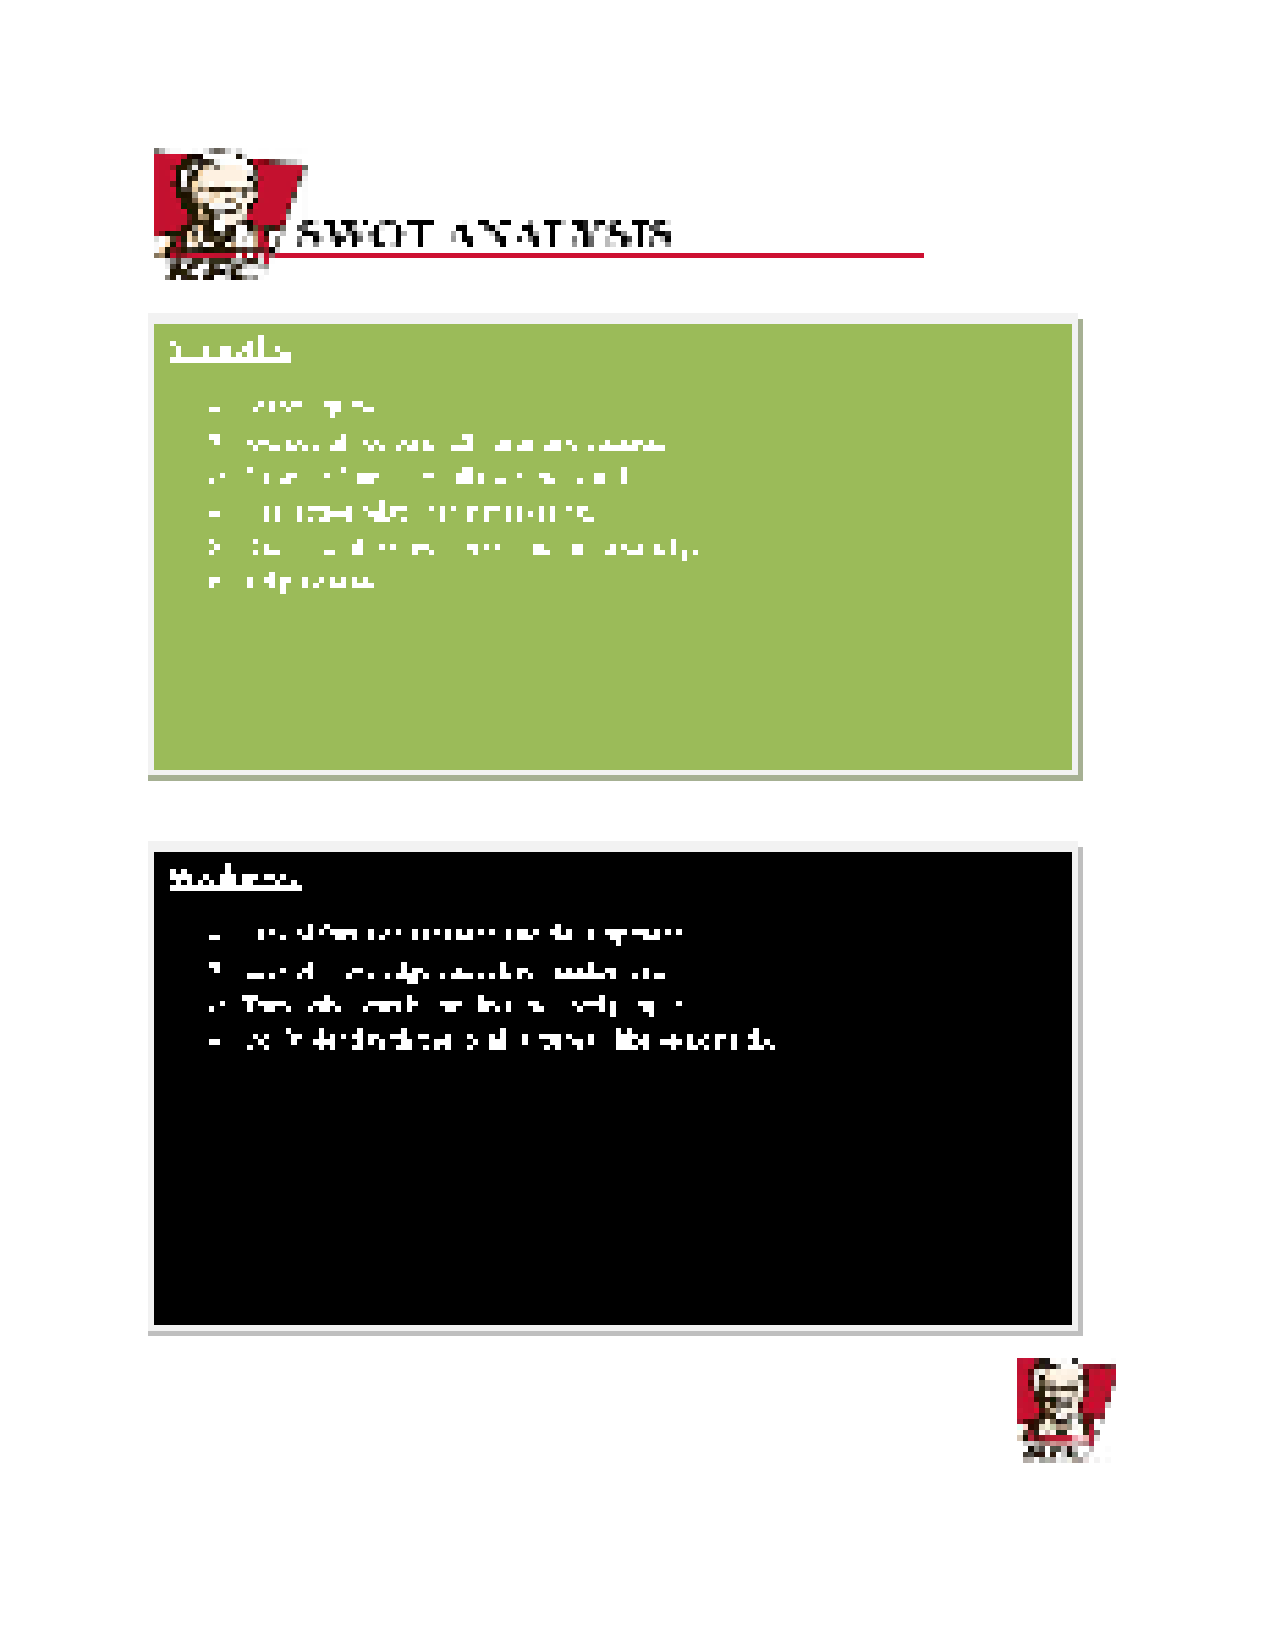 kfc marketing plan View kfc marketing plan presentations online, safely and virus-free many are downloadable learn new and interesting things get ideas for your own presentations.